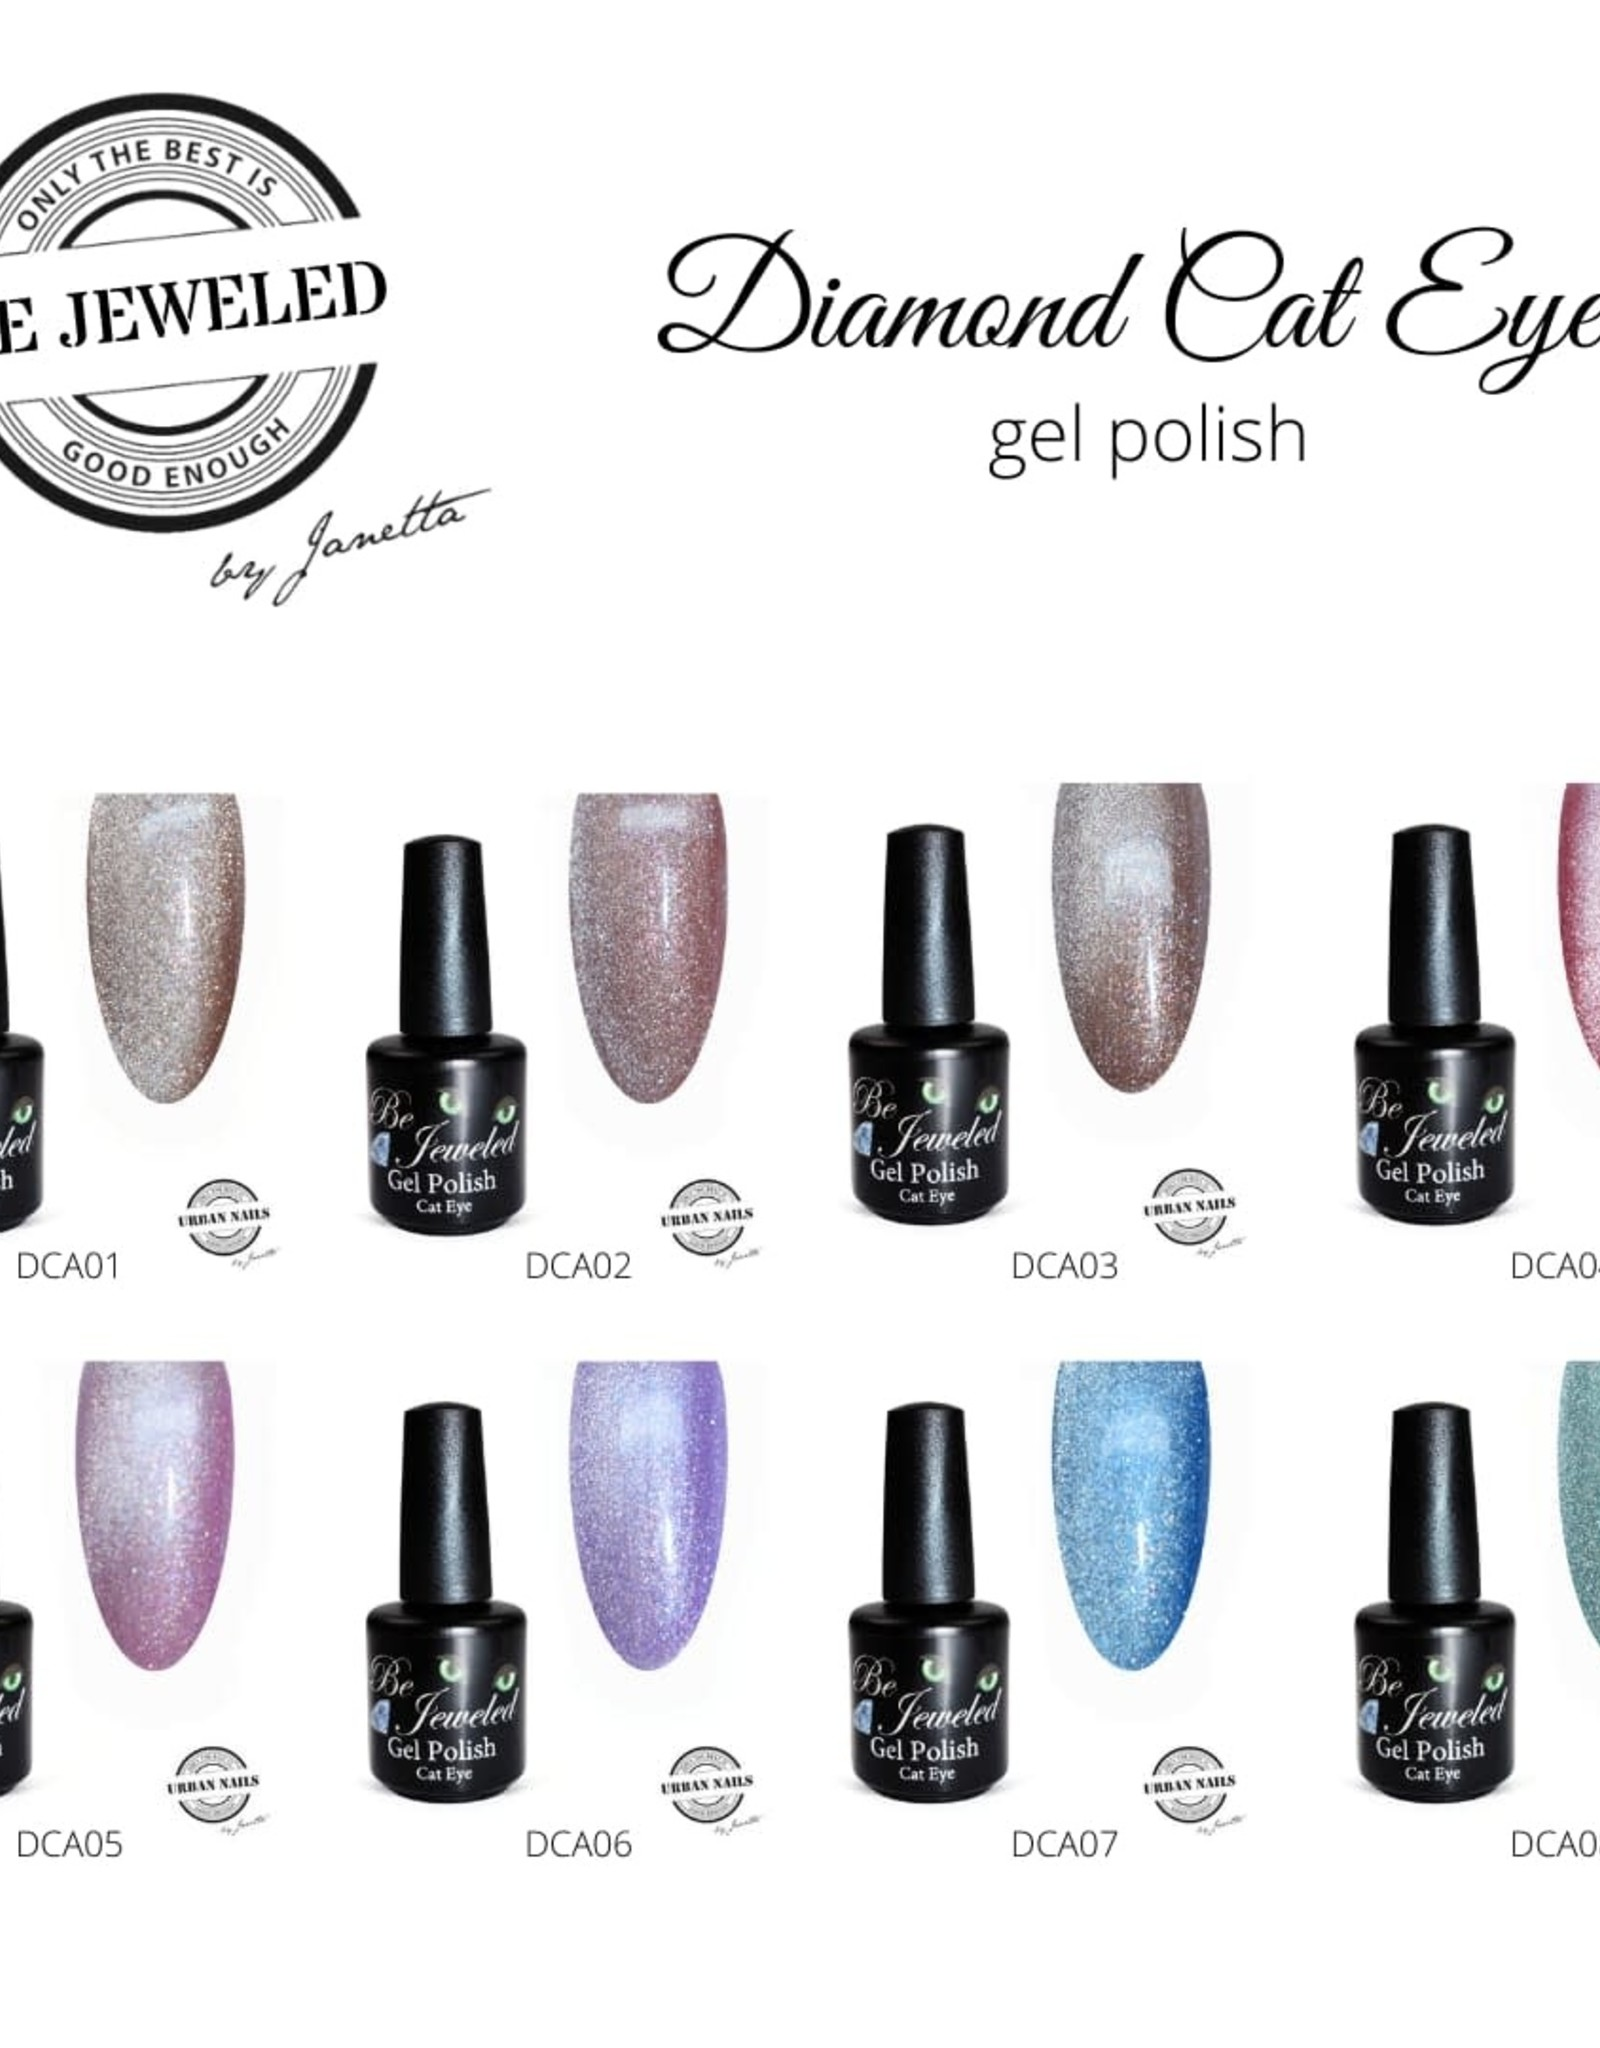 Urban Nails Be Jeweled Cateye Diamond 04